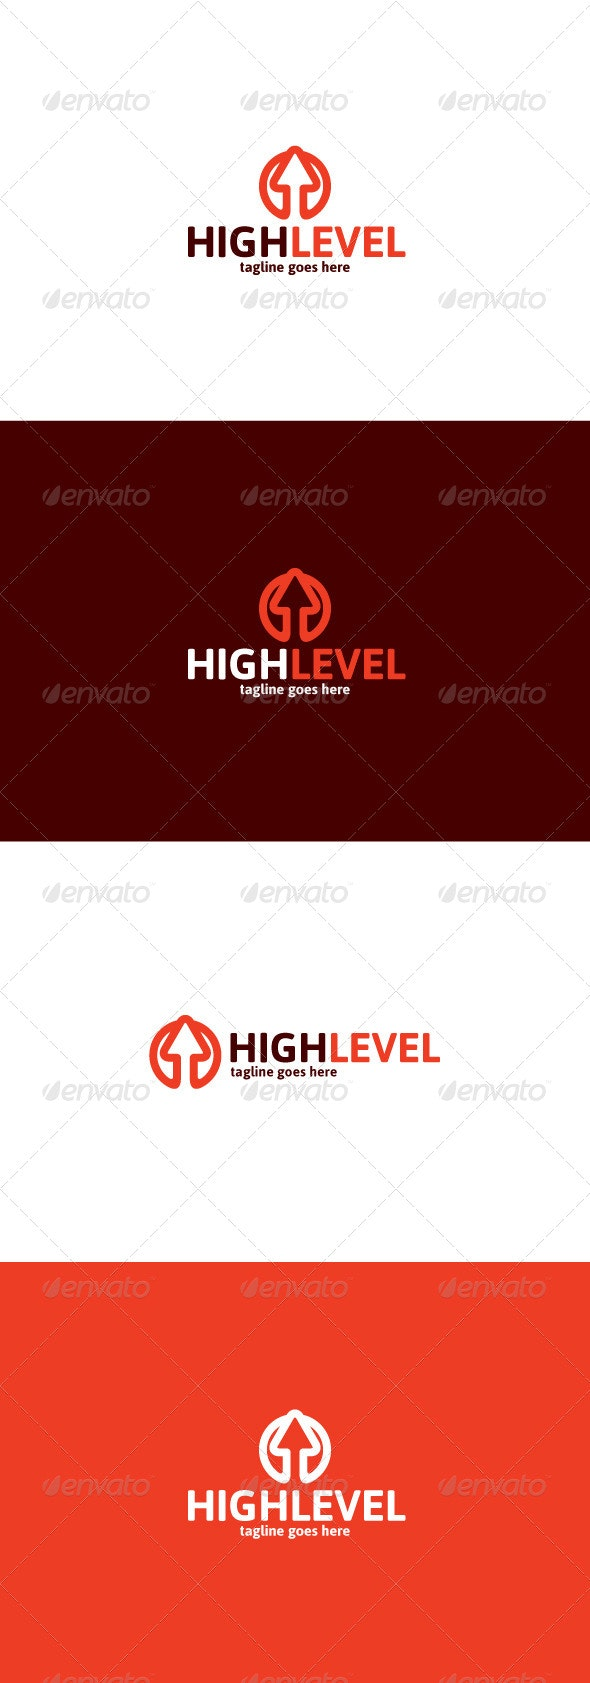 High Level Logo - Vector Abstract